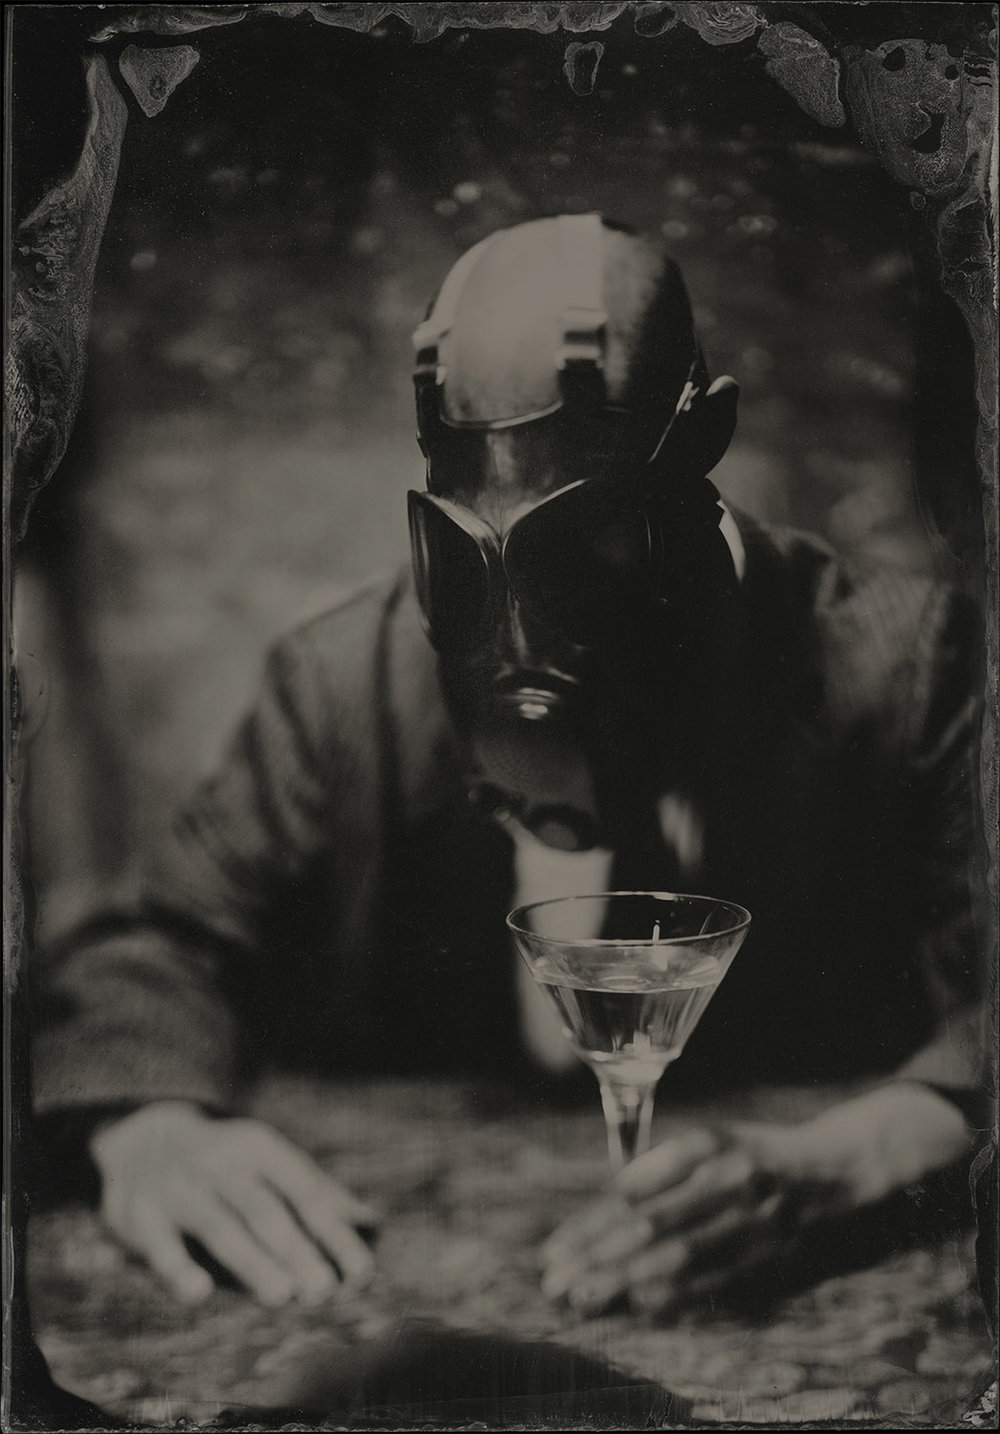 The End is Nigh - By: James Wigger  www.jameswigger.com